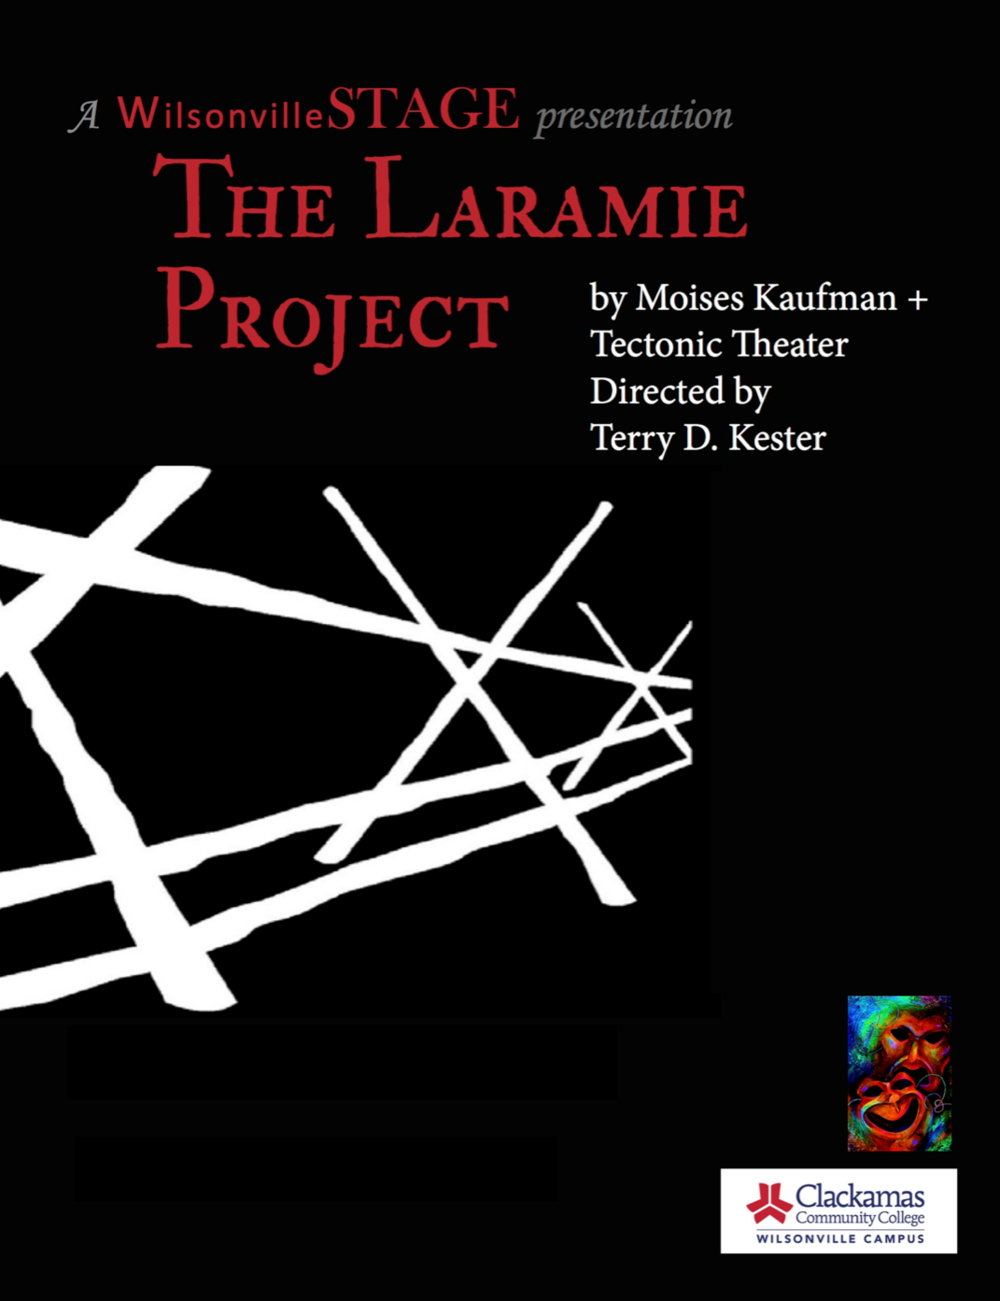 The Laramie Project - By Moises Kaufman + Tectonic TheaterDirected by Terry Kester